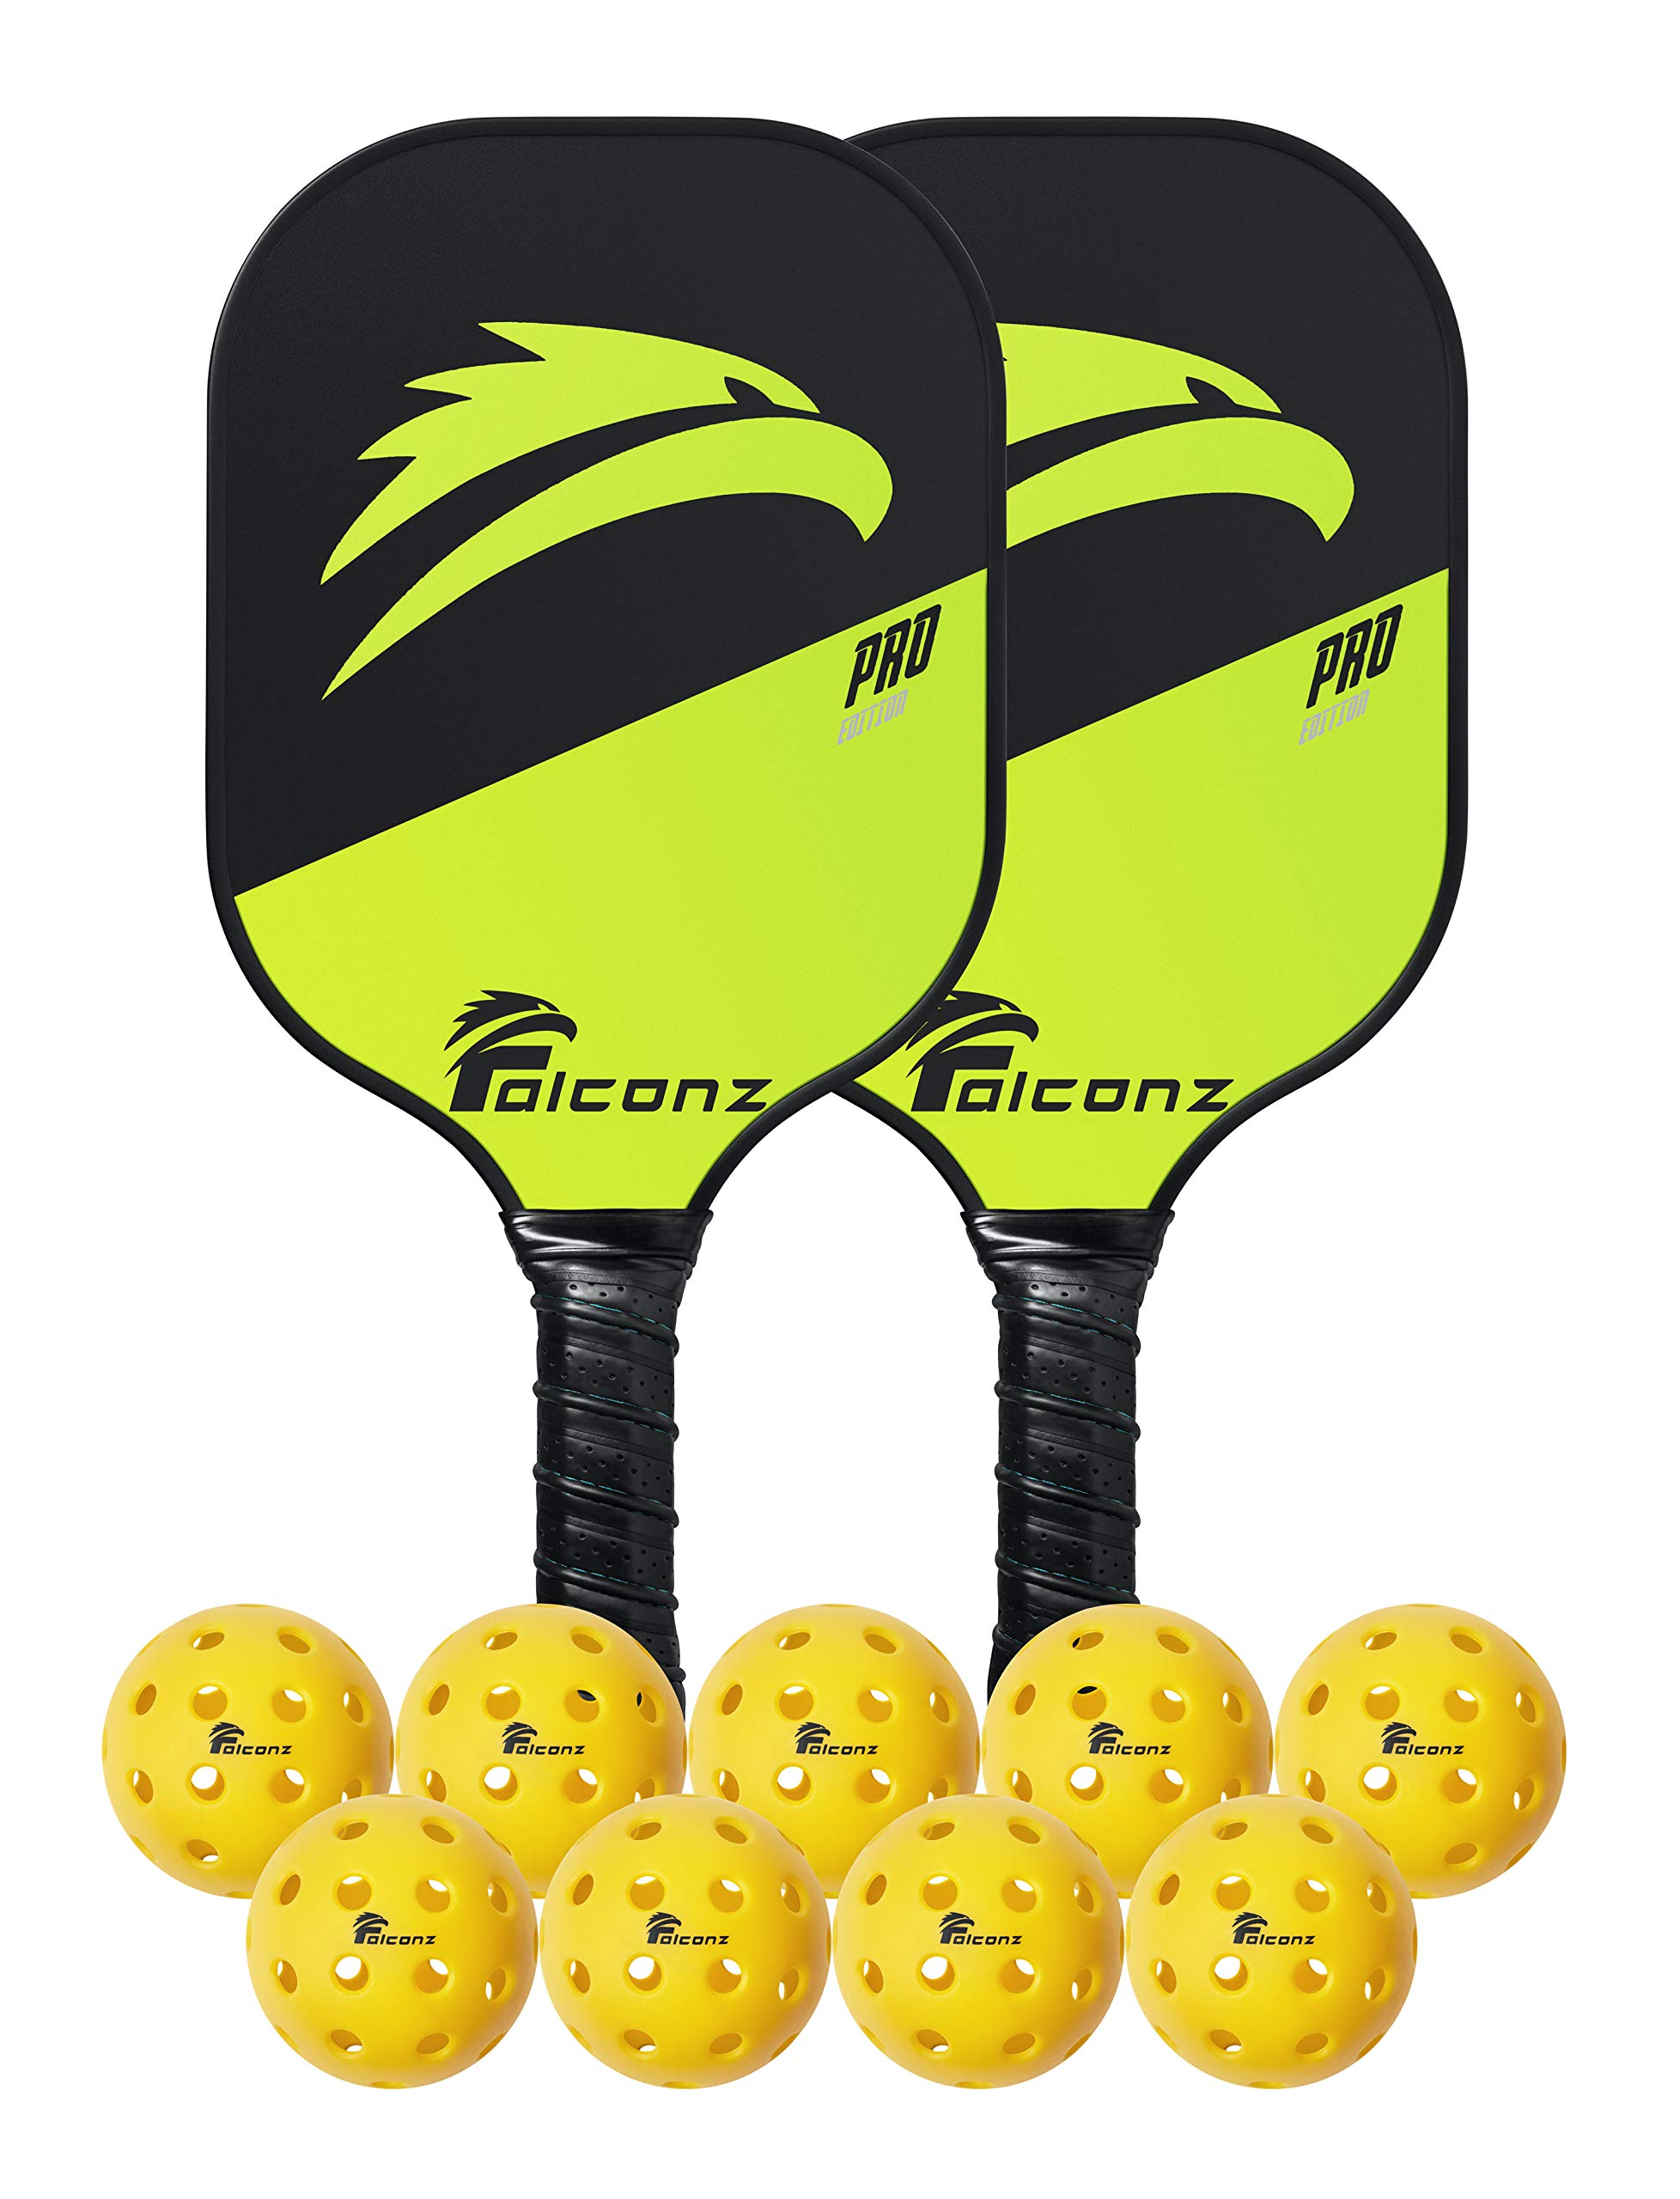 Falconz Pickleball Set - 2 Lightweight Graphite Paddles with